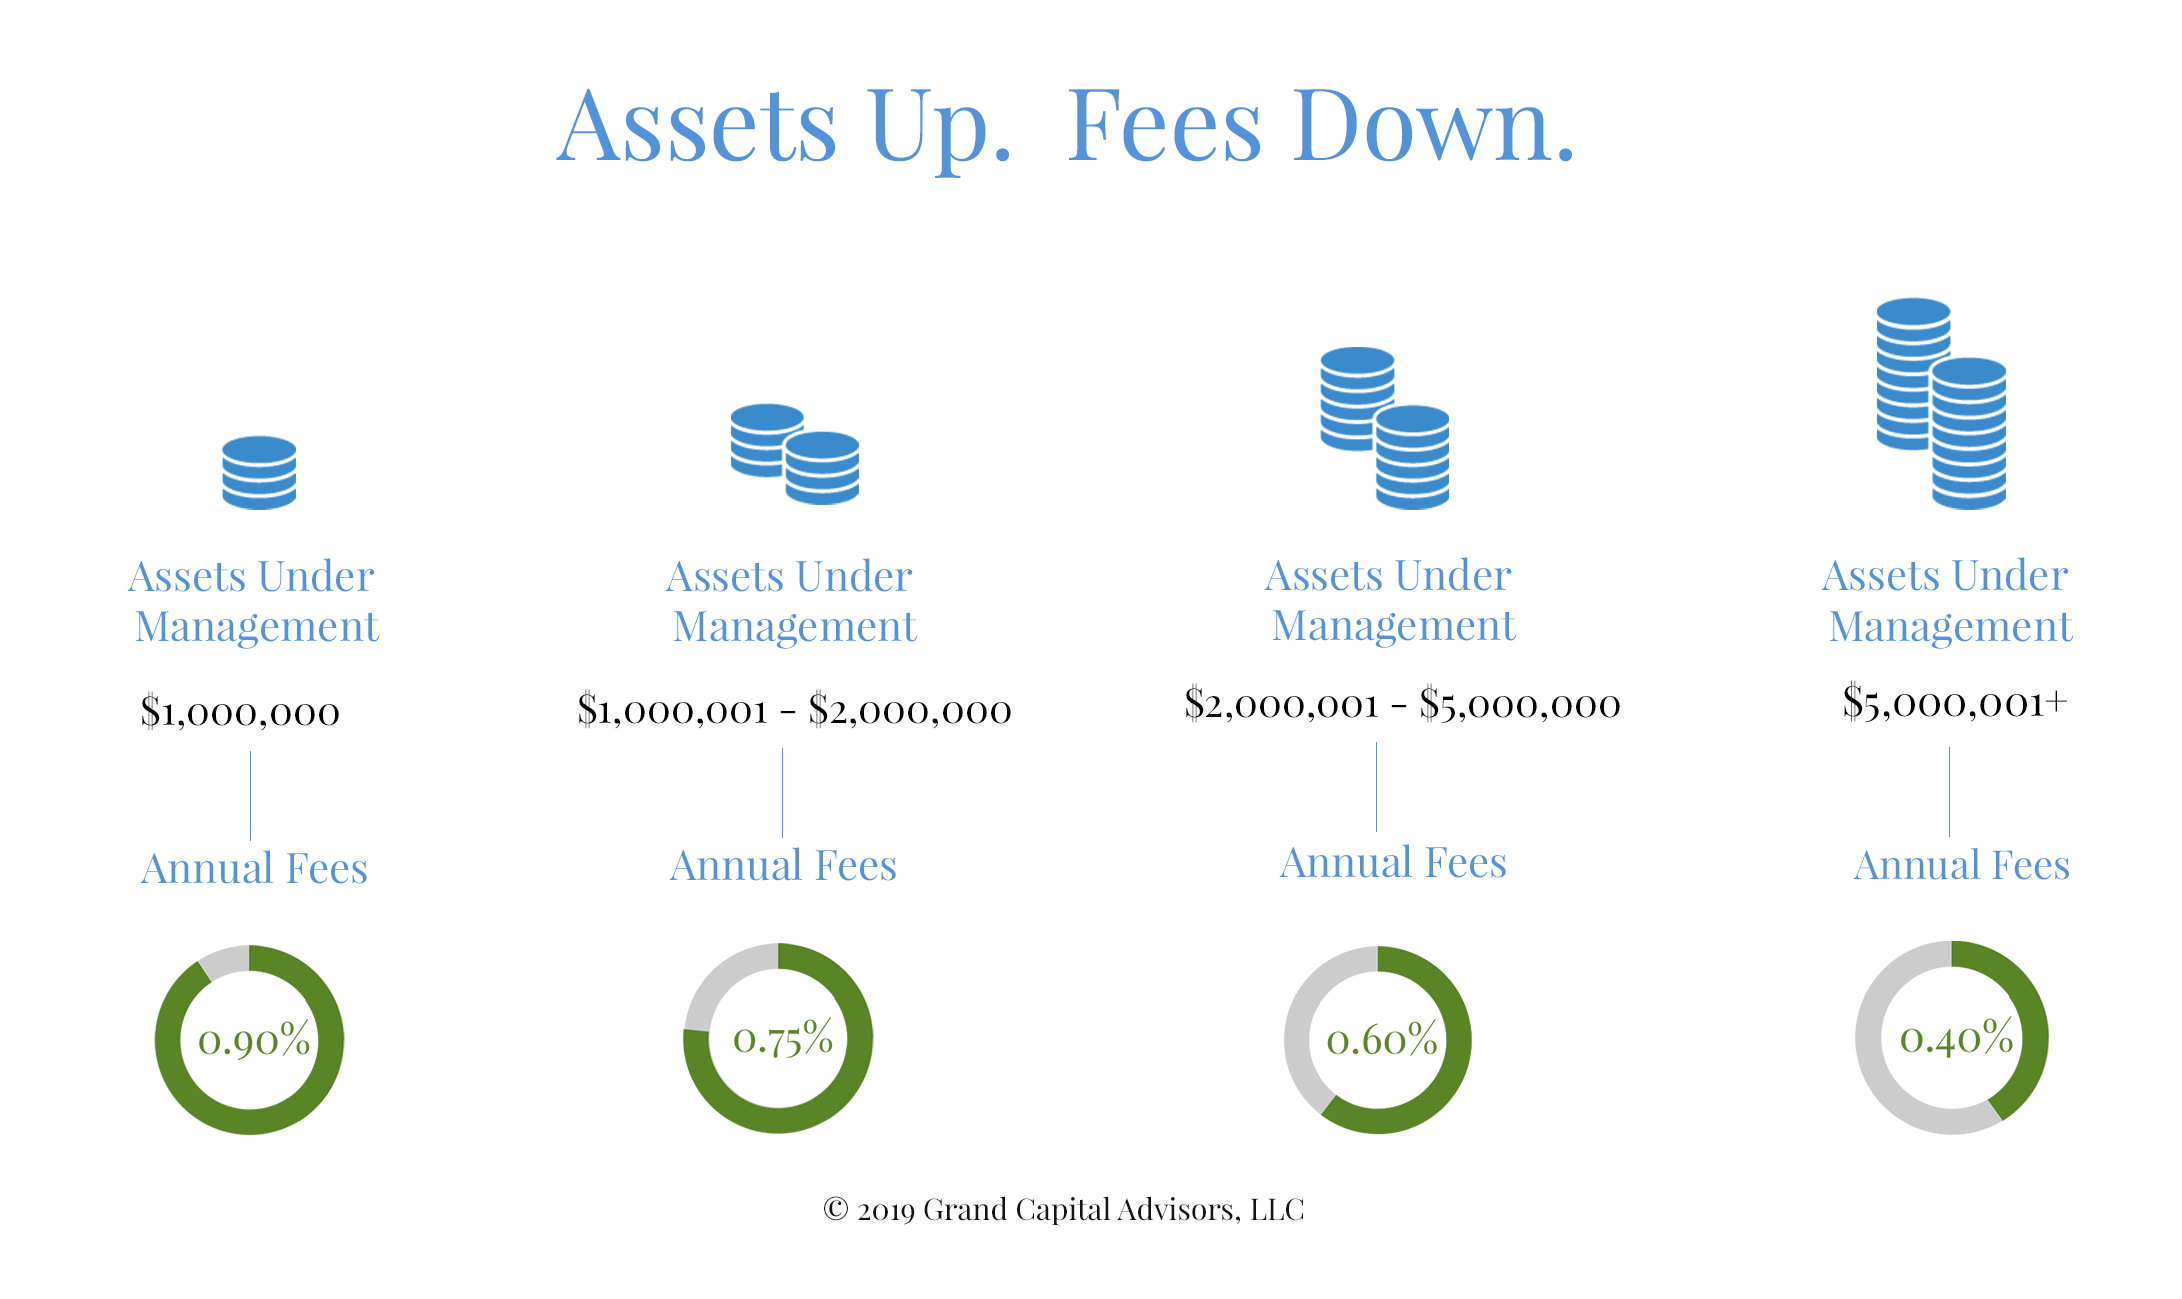 As your assets grow, your fees go down.  Annual fees are 0.40% for assets of $5,000,000 or more, 0.60% for $2,000,001 to $5,000,000, 0.75% for $1,000,0001 to $2,000,000 and 0.90% for $1,000,000 and under.